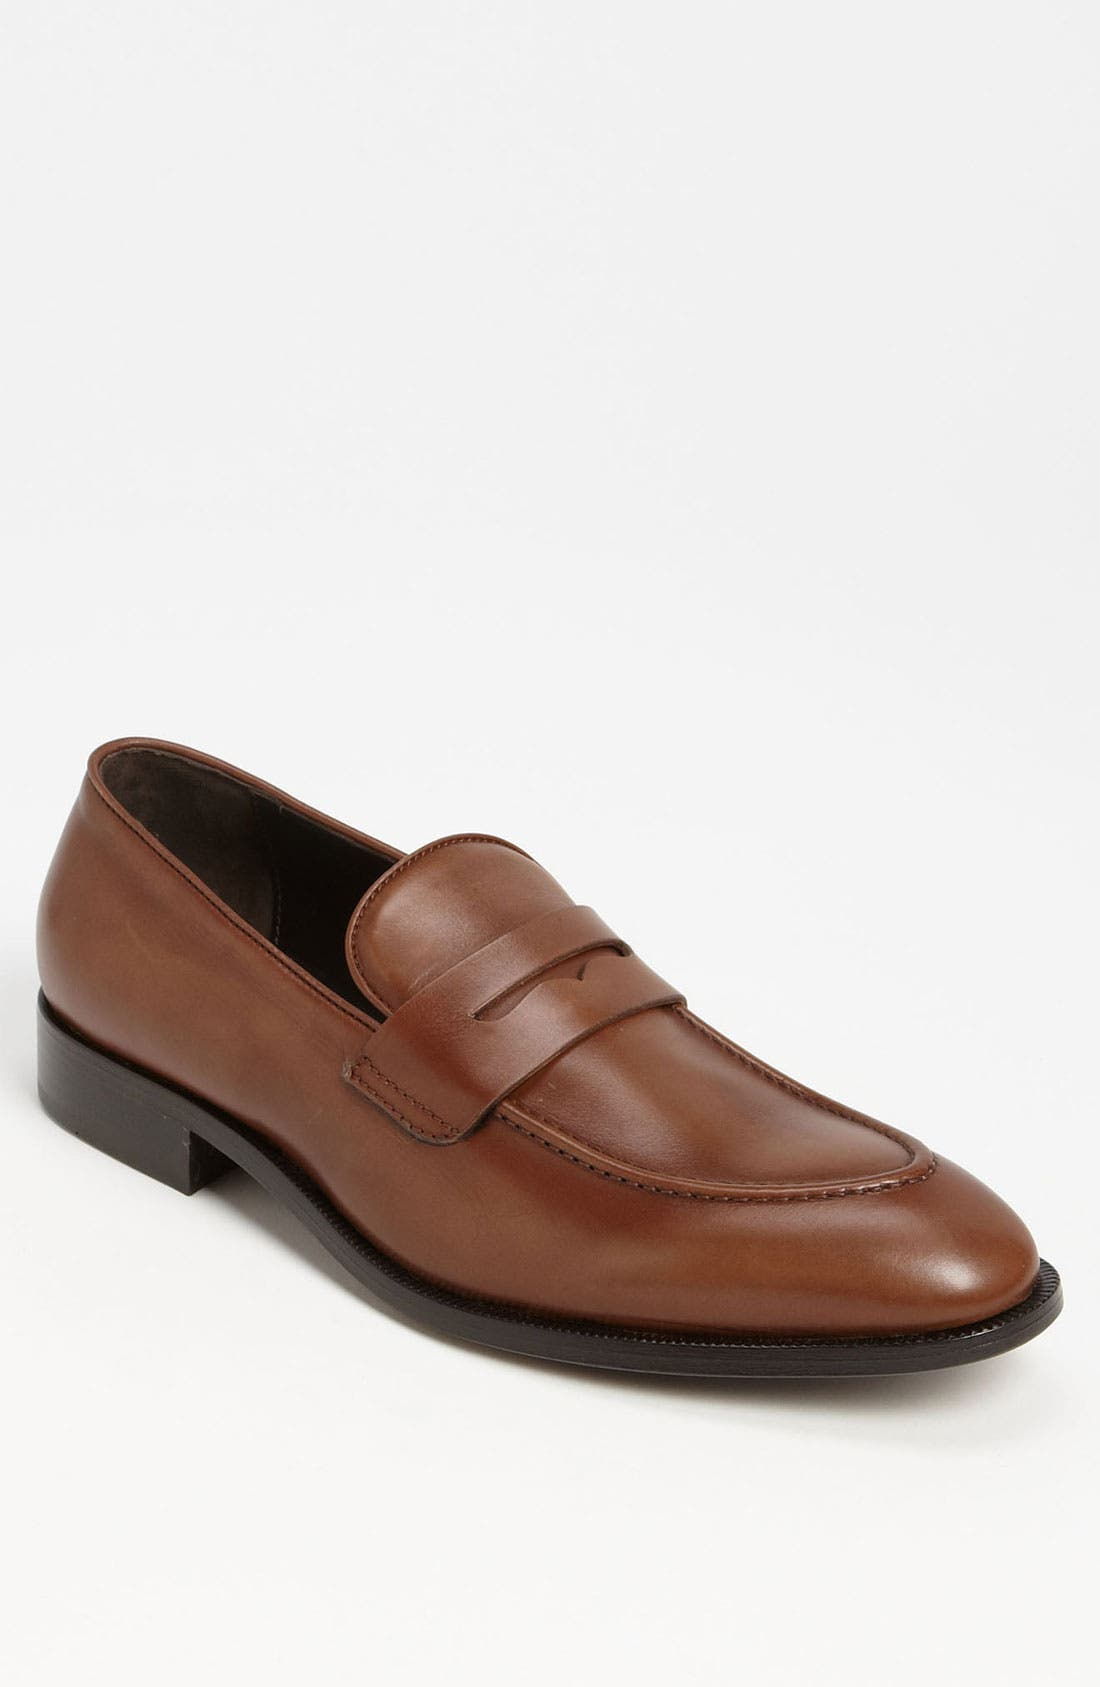 Alternate Image 1 Selected - Attilio Giusti Leombruni 'Goya' Penny Loafer